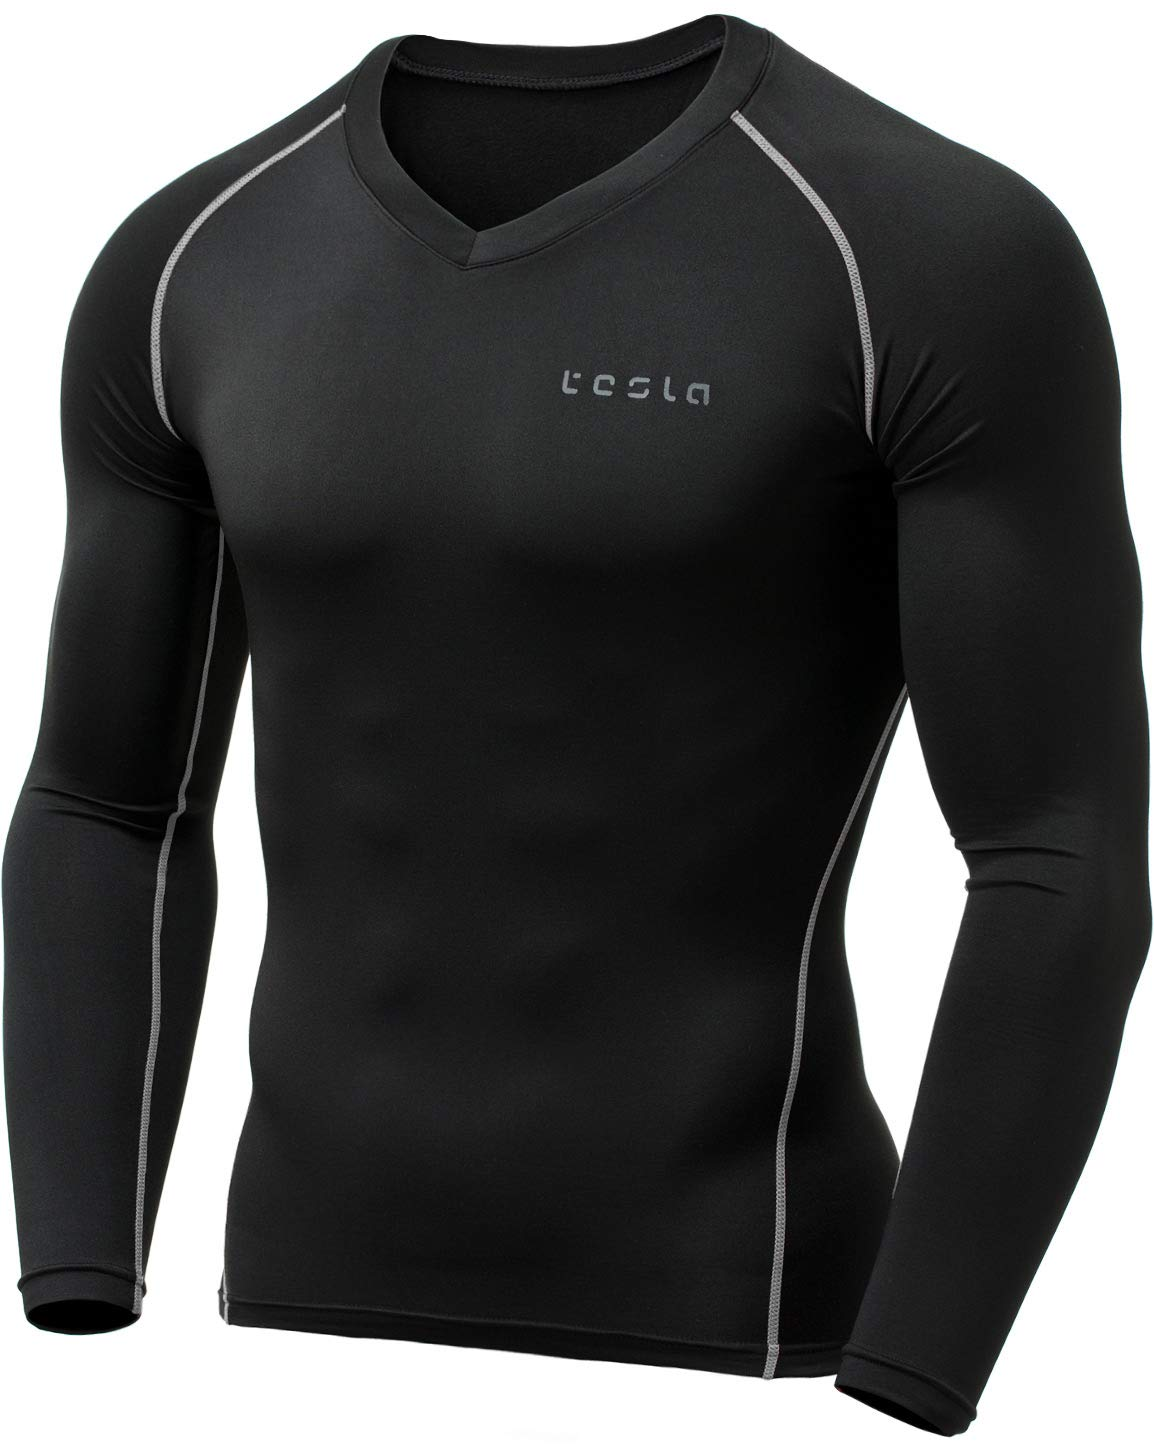 TSLA Men's Thermal Wintergear Compression Baselayer Vneck Long Sleeve Top, Thermal V Neck(yuv34) - Black & Light Grey, X-Large by TSLA